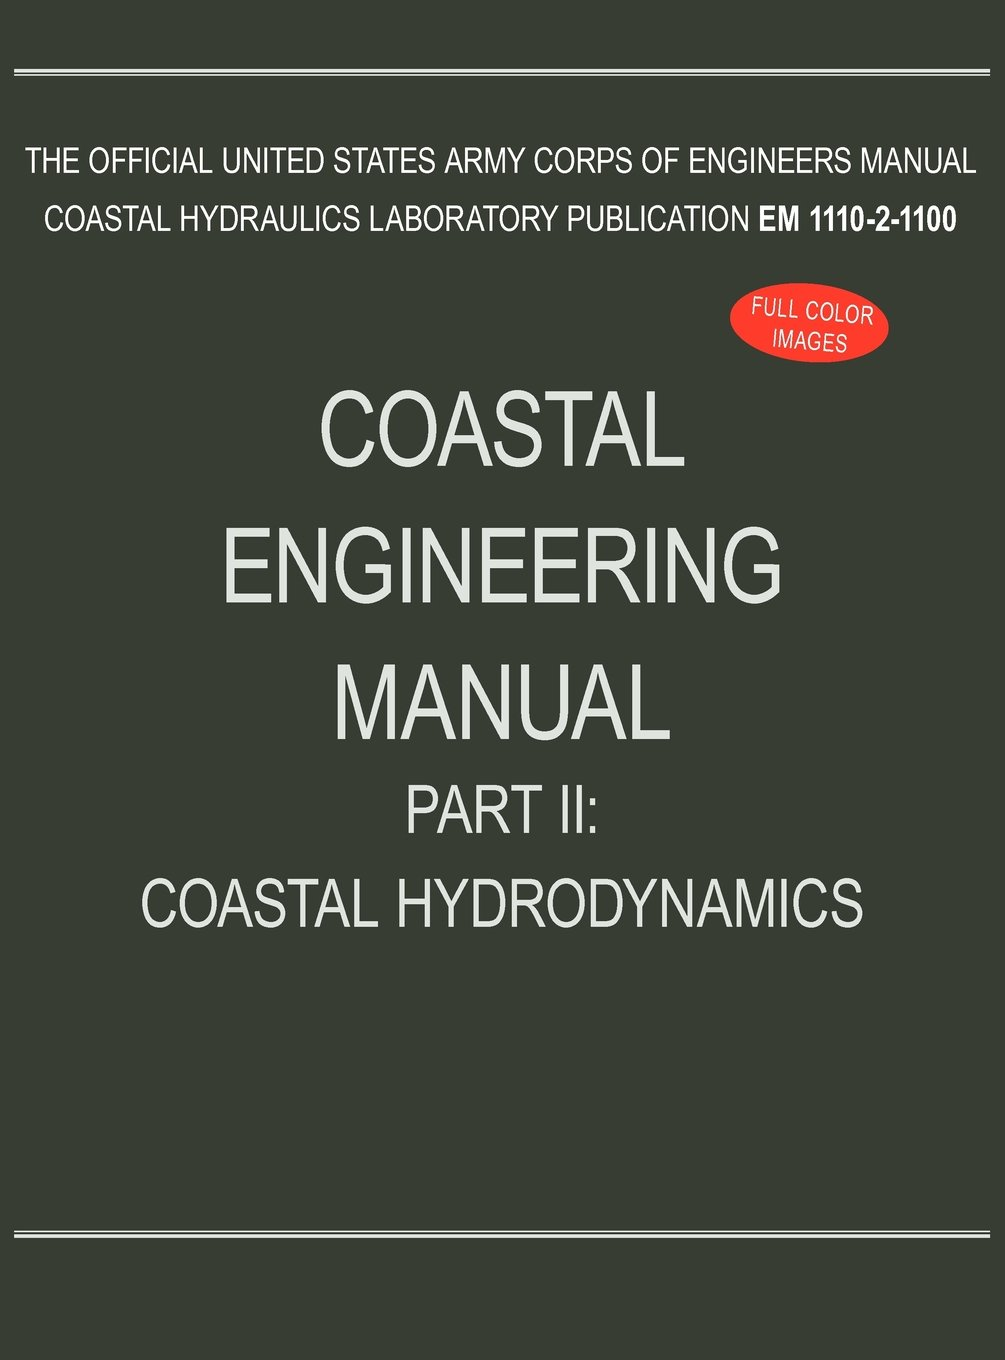 Coastal Engineering Manual Part II: Coastal Hydrodynamics (EM 1110-2-1100):  U.S. Army Corps of Engineers: 9781782661900: Amazon.com: Books